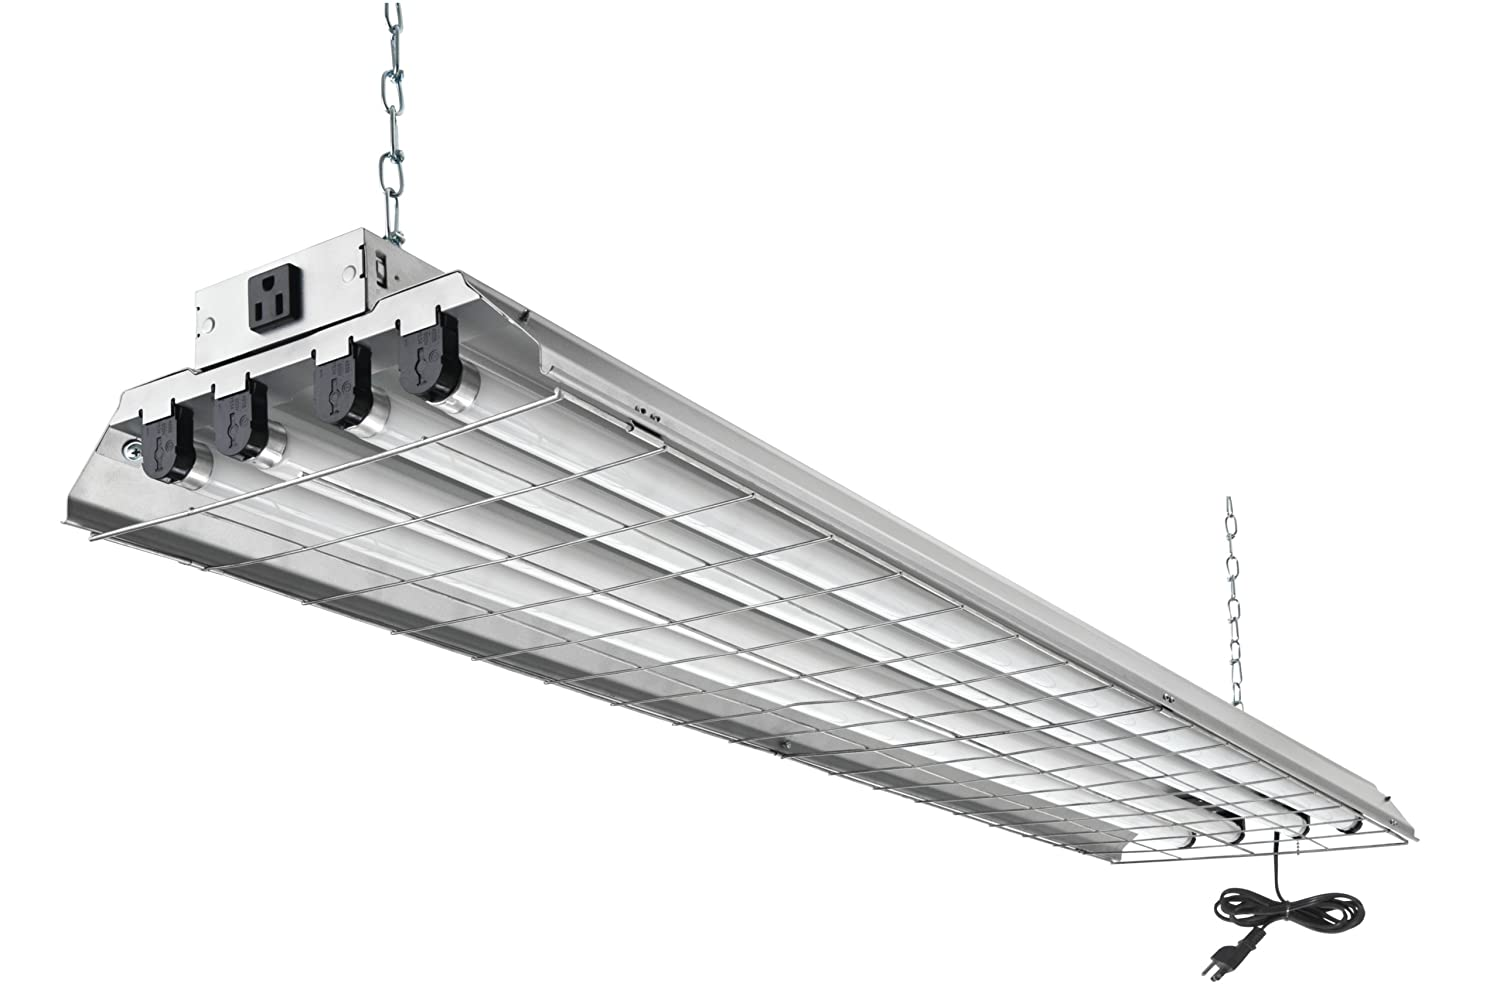 Amazon lithonia lighting 1284grd re 4 light heavy duty amazon lithonia lighting 1284grd re 4 light heavy duty shoplight home improvement arubaitofo Images